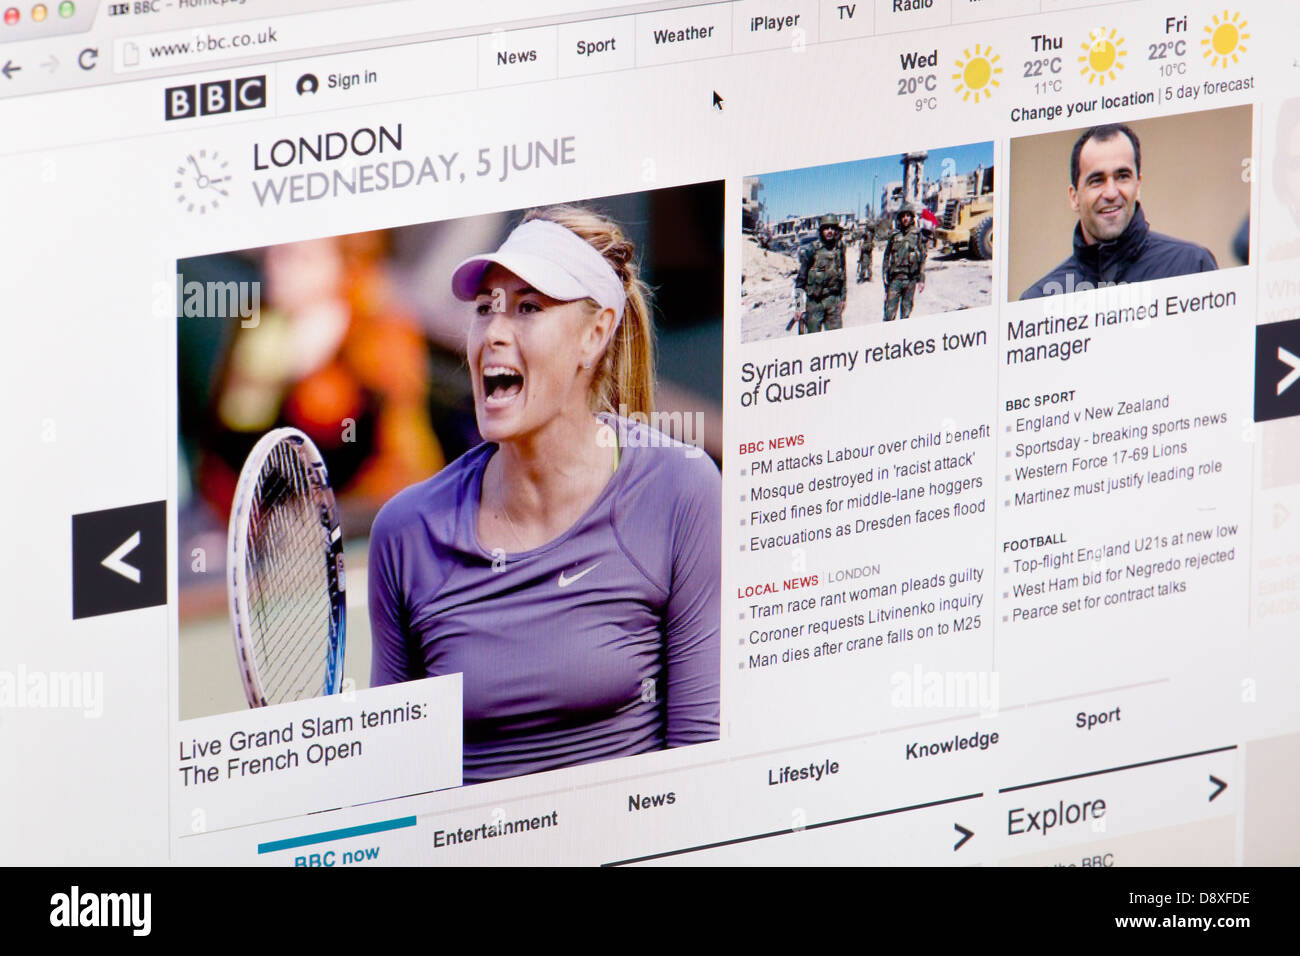 BBC News London Sport Website or web page on a laptop screen or computer monitor - Stock Image